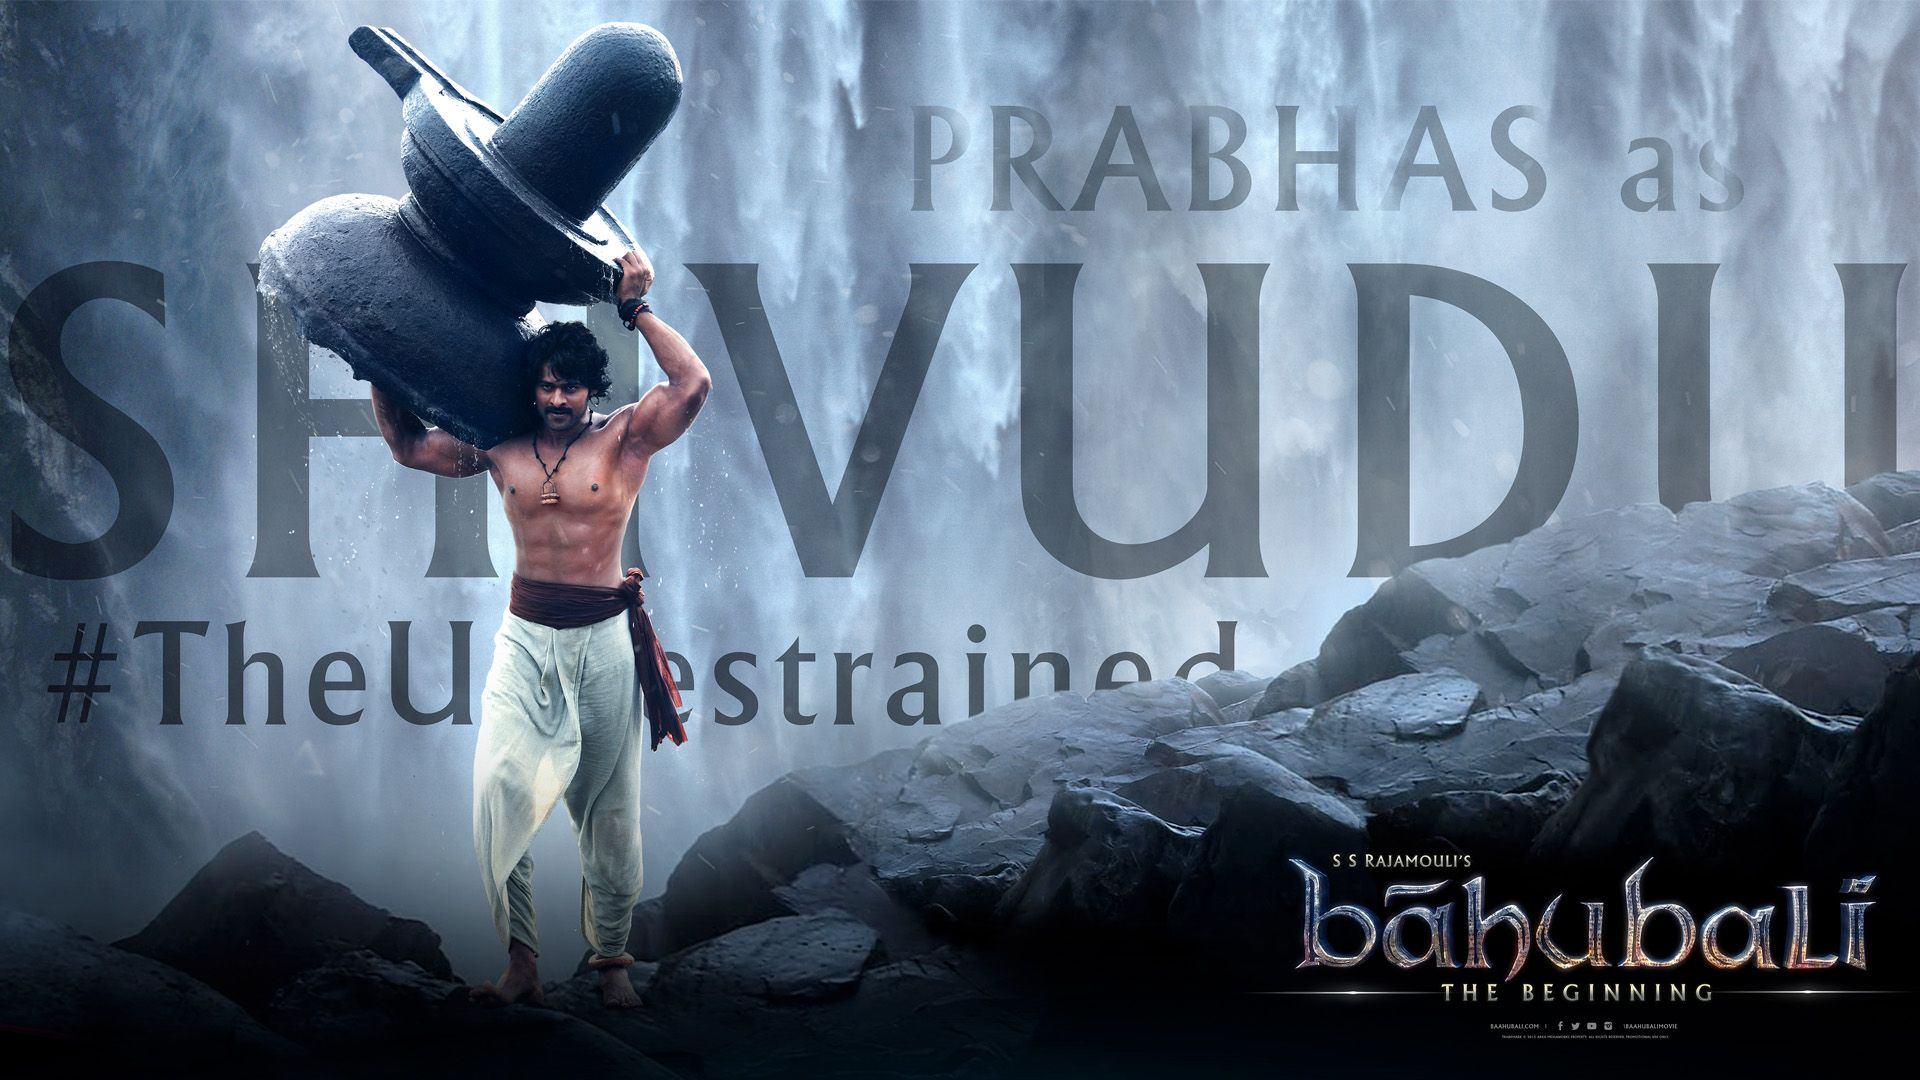 Wallpaper download bahubali - Click Here To Download In Hd Format Prabhas In Bahubali Http